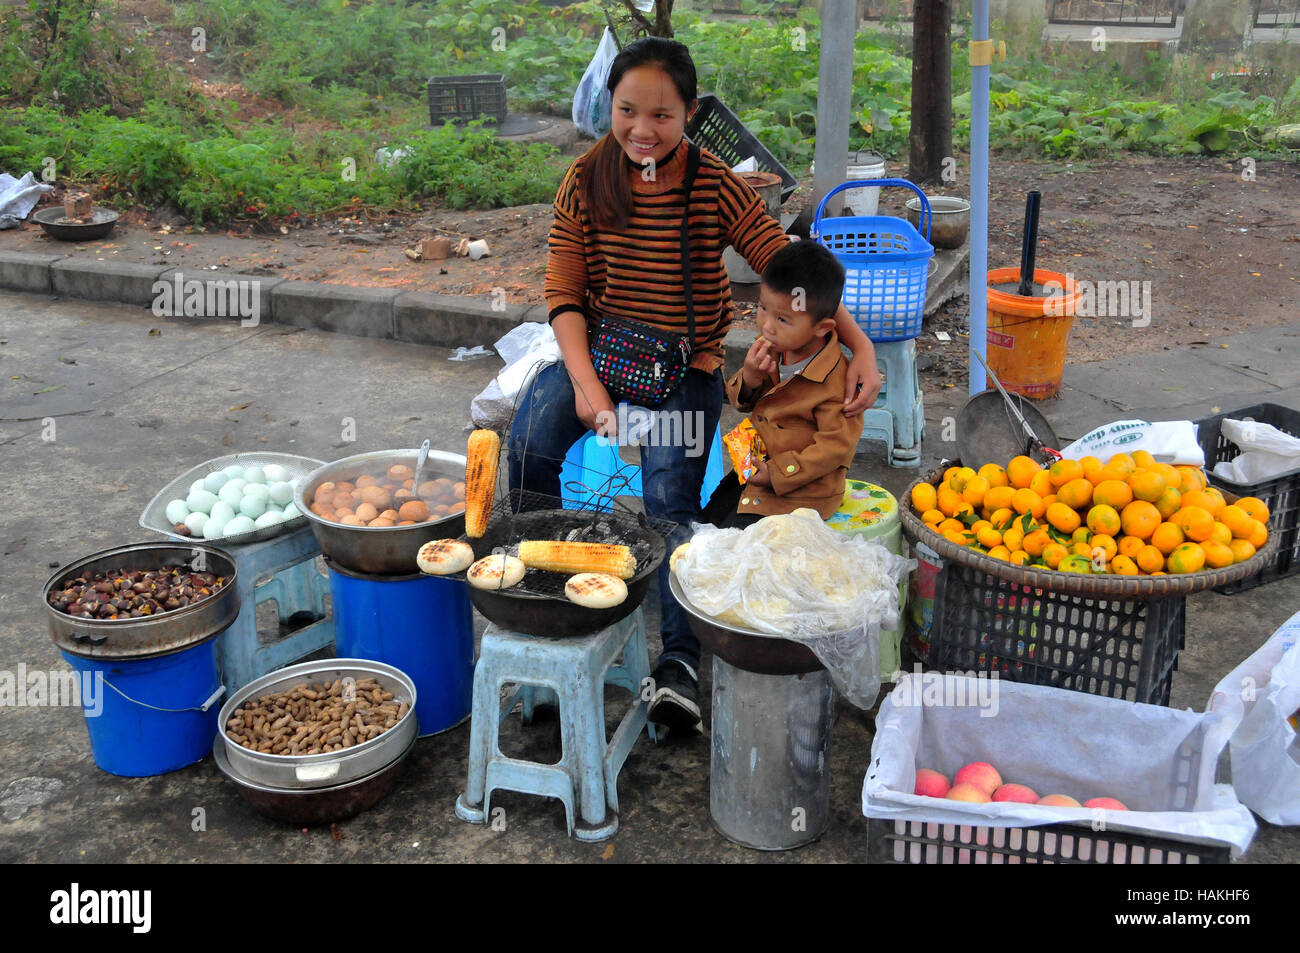 Vendors, such as this mother and son, often sale food along the roadway in some areas of China. Stock Photo